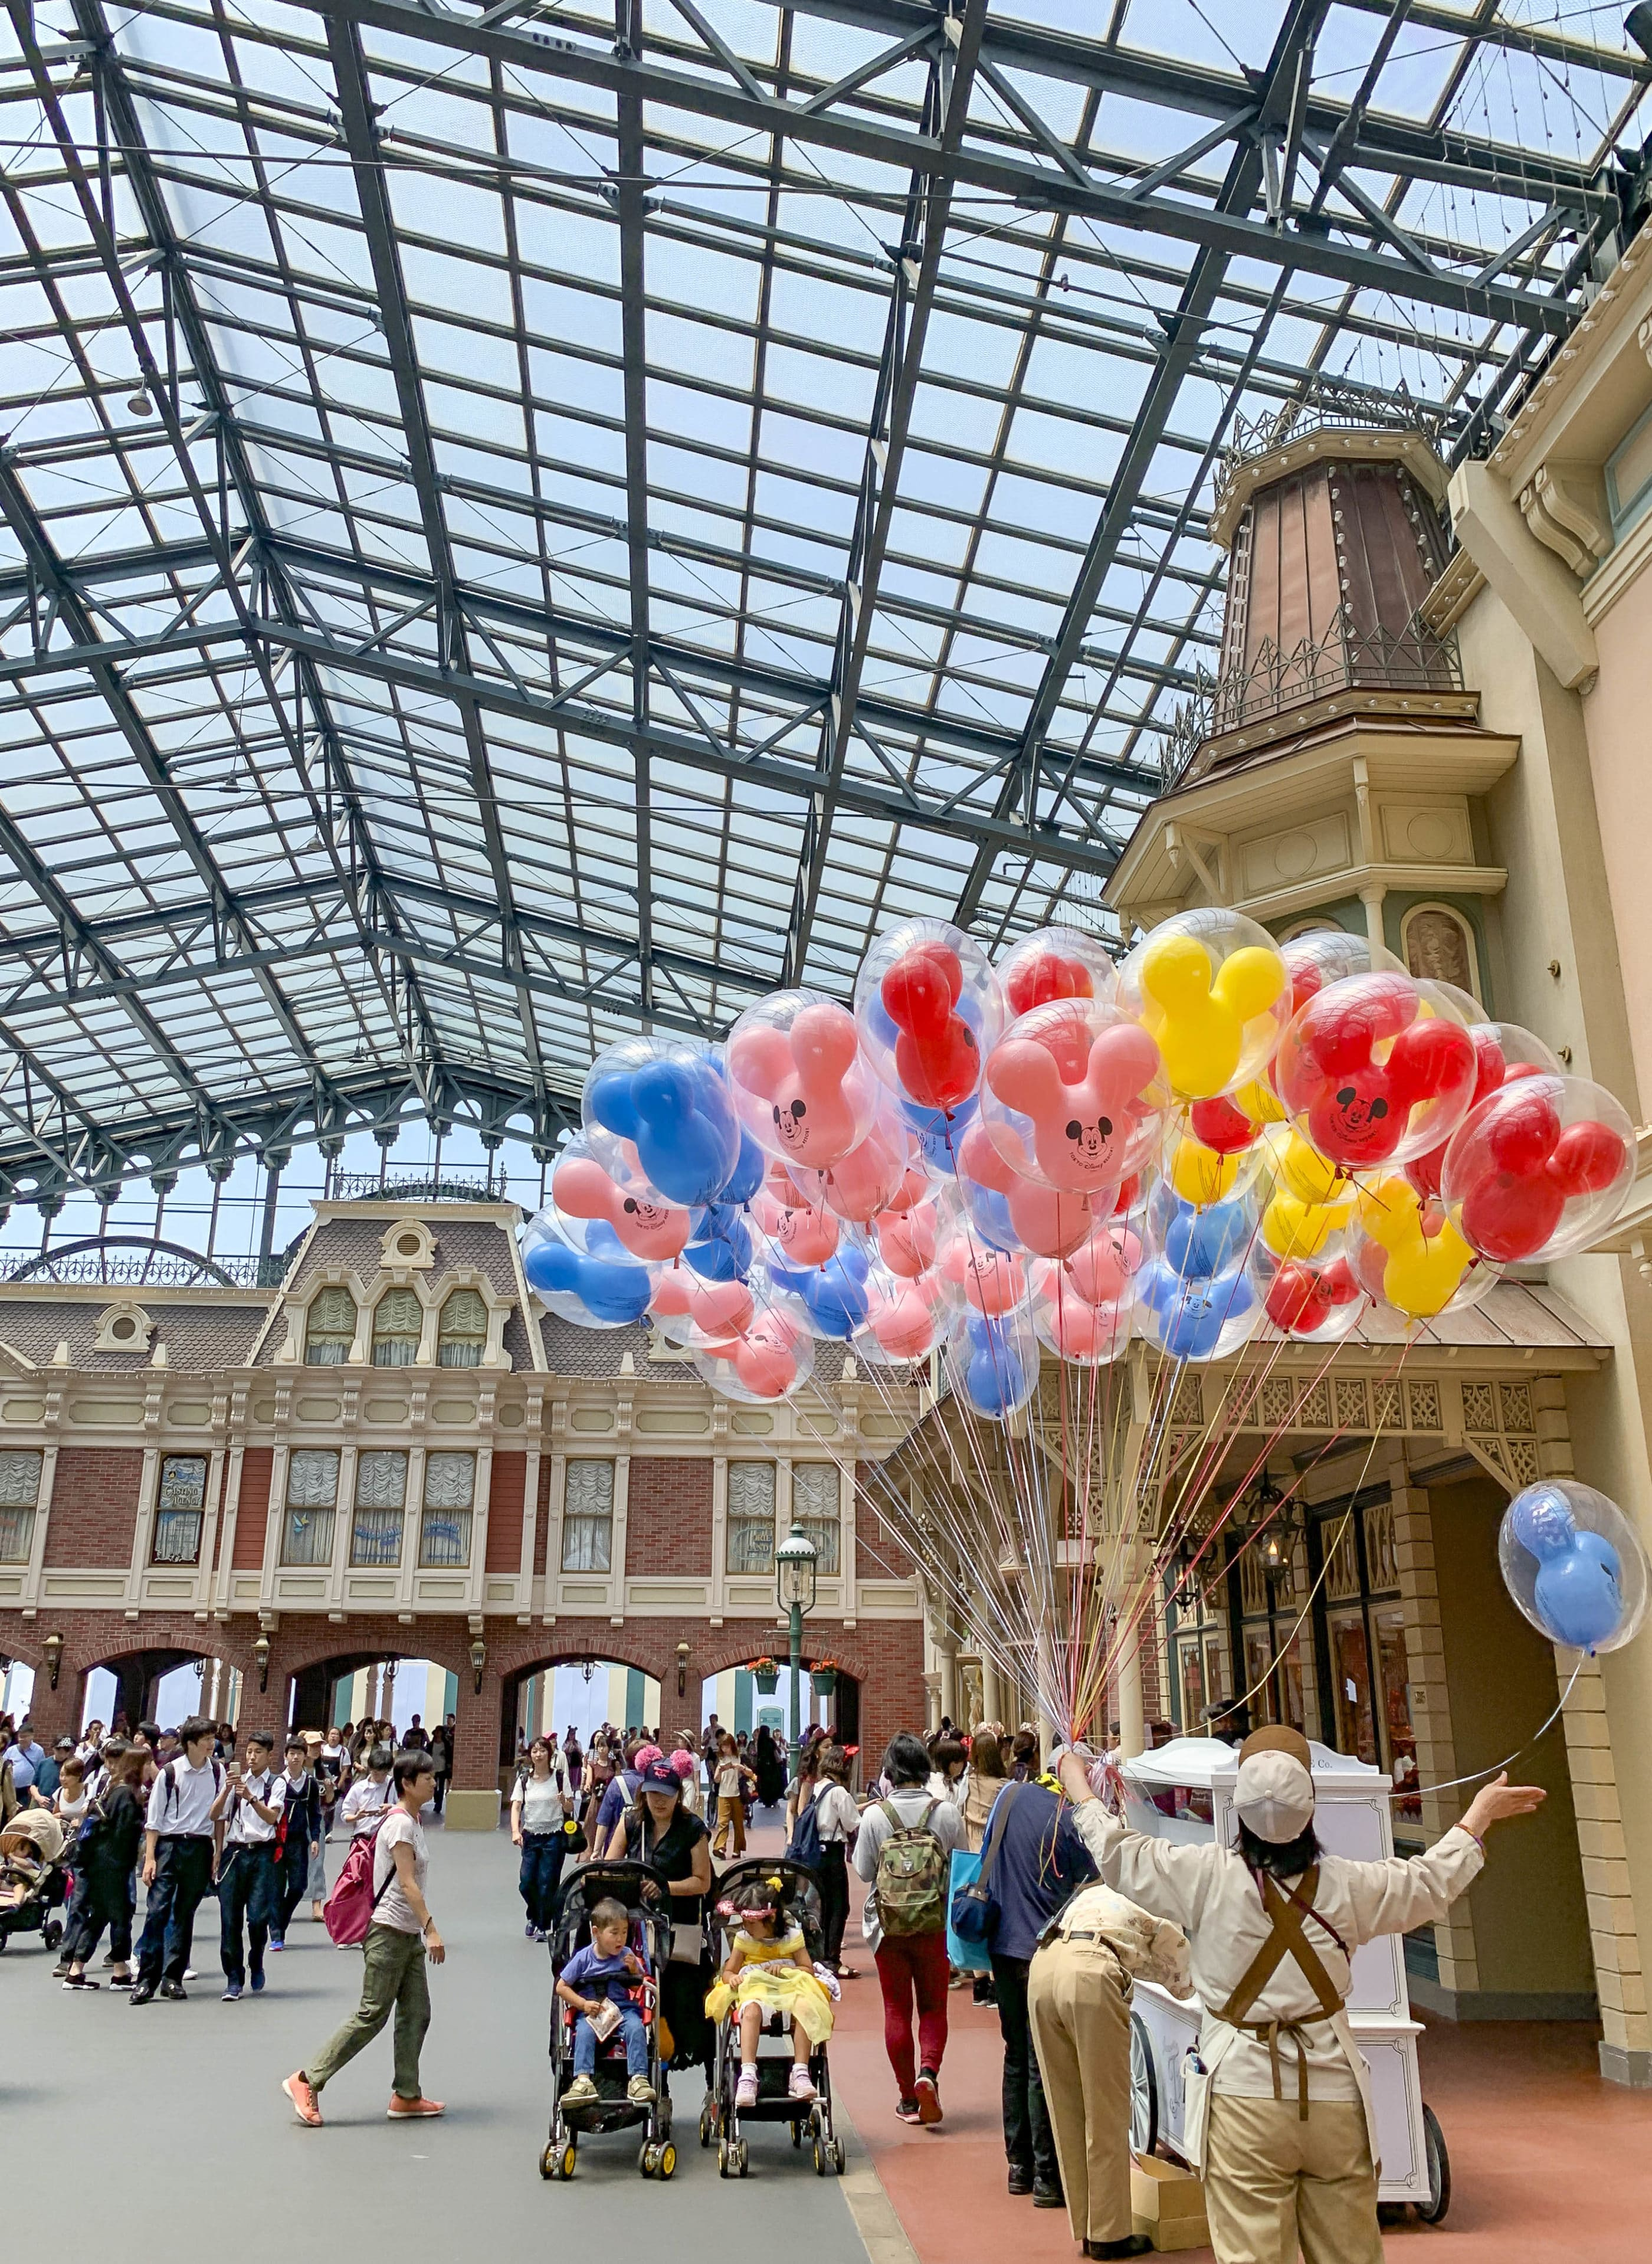 Mickey Mouse balloons for sale at the World Bazaar entrance to Tokyo Disneyland, one of the top things to do in Tokyo with kids.